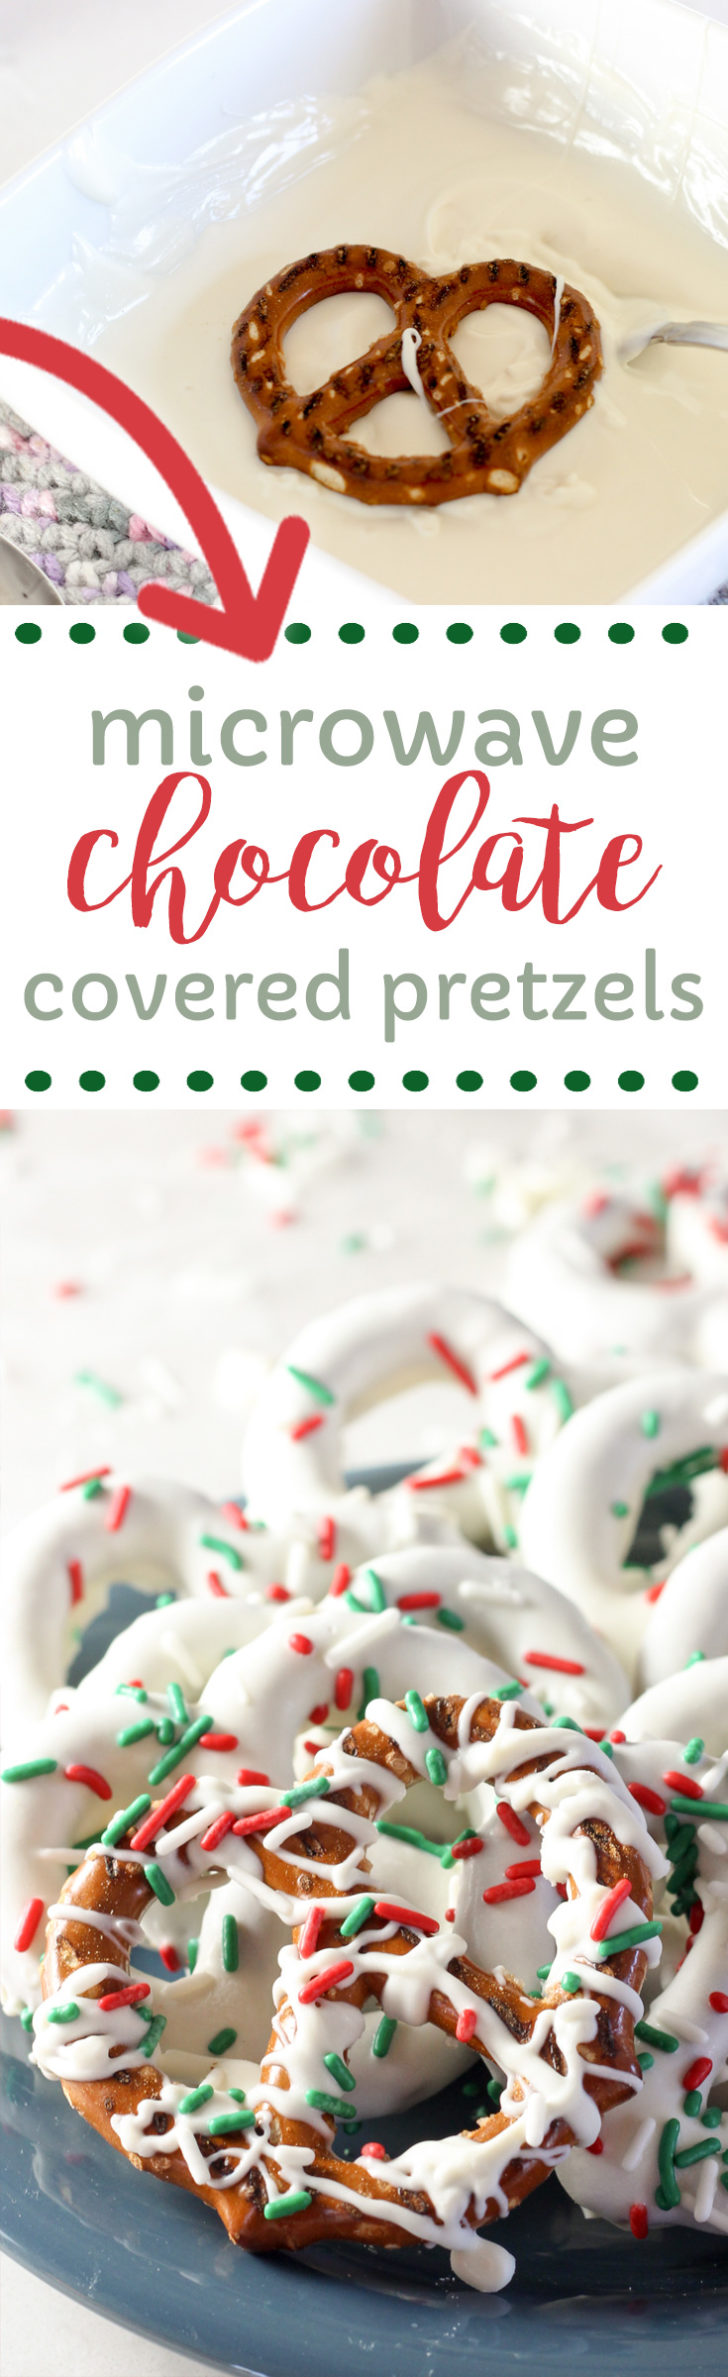 Make chocolate covered pretzels by melting the chocolate in the microwave.